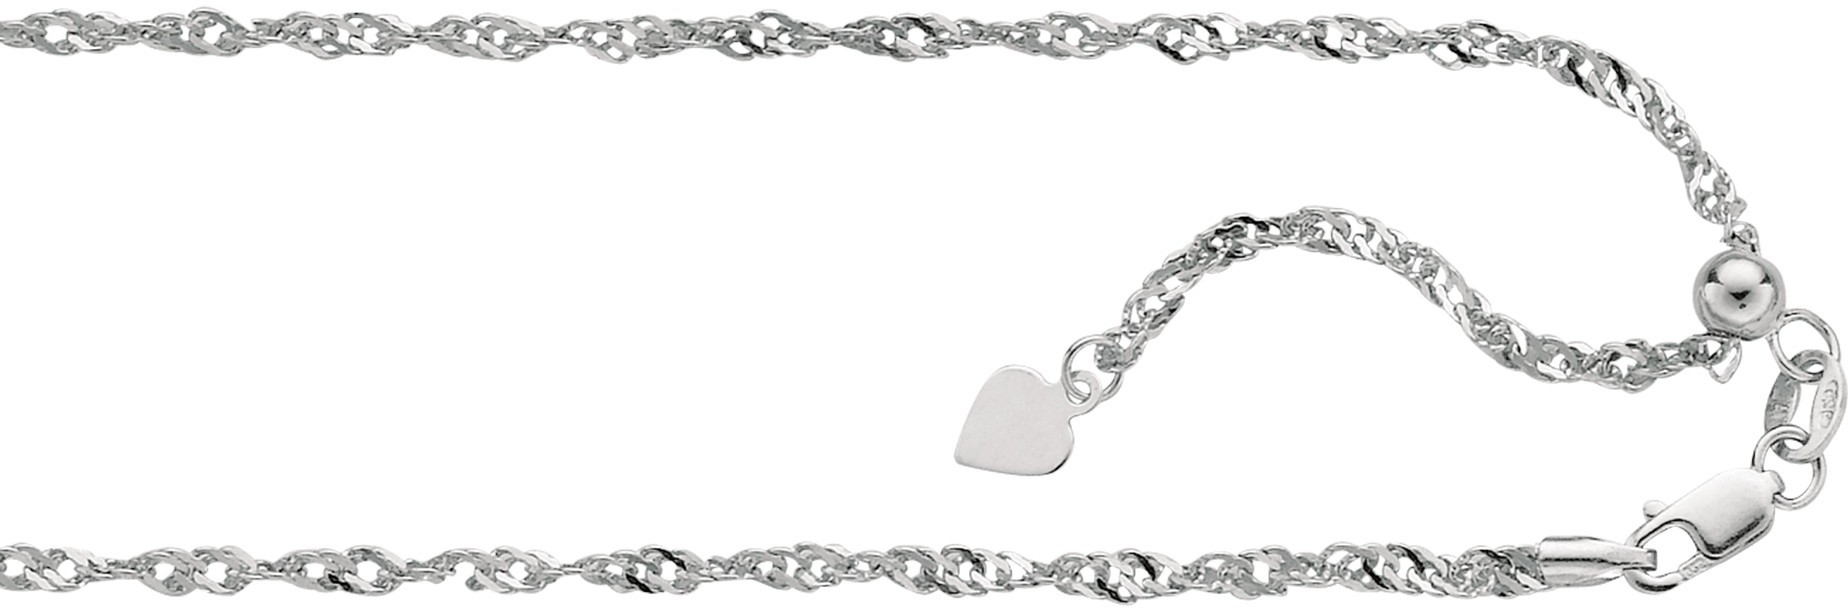 "22"" 14K White Gold 1.1mm (0.04"") Polished Diamond Cut Adjustable Singapore Chain w/ Lobster Clasp & Small Heart"